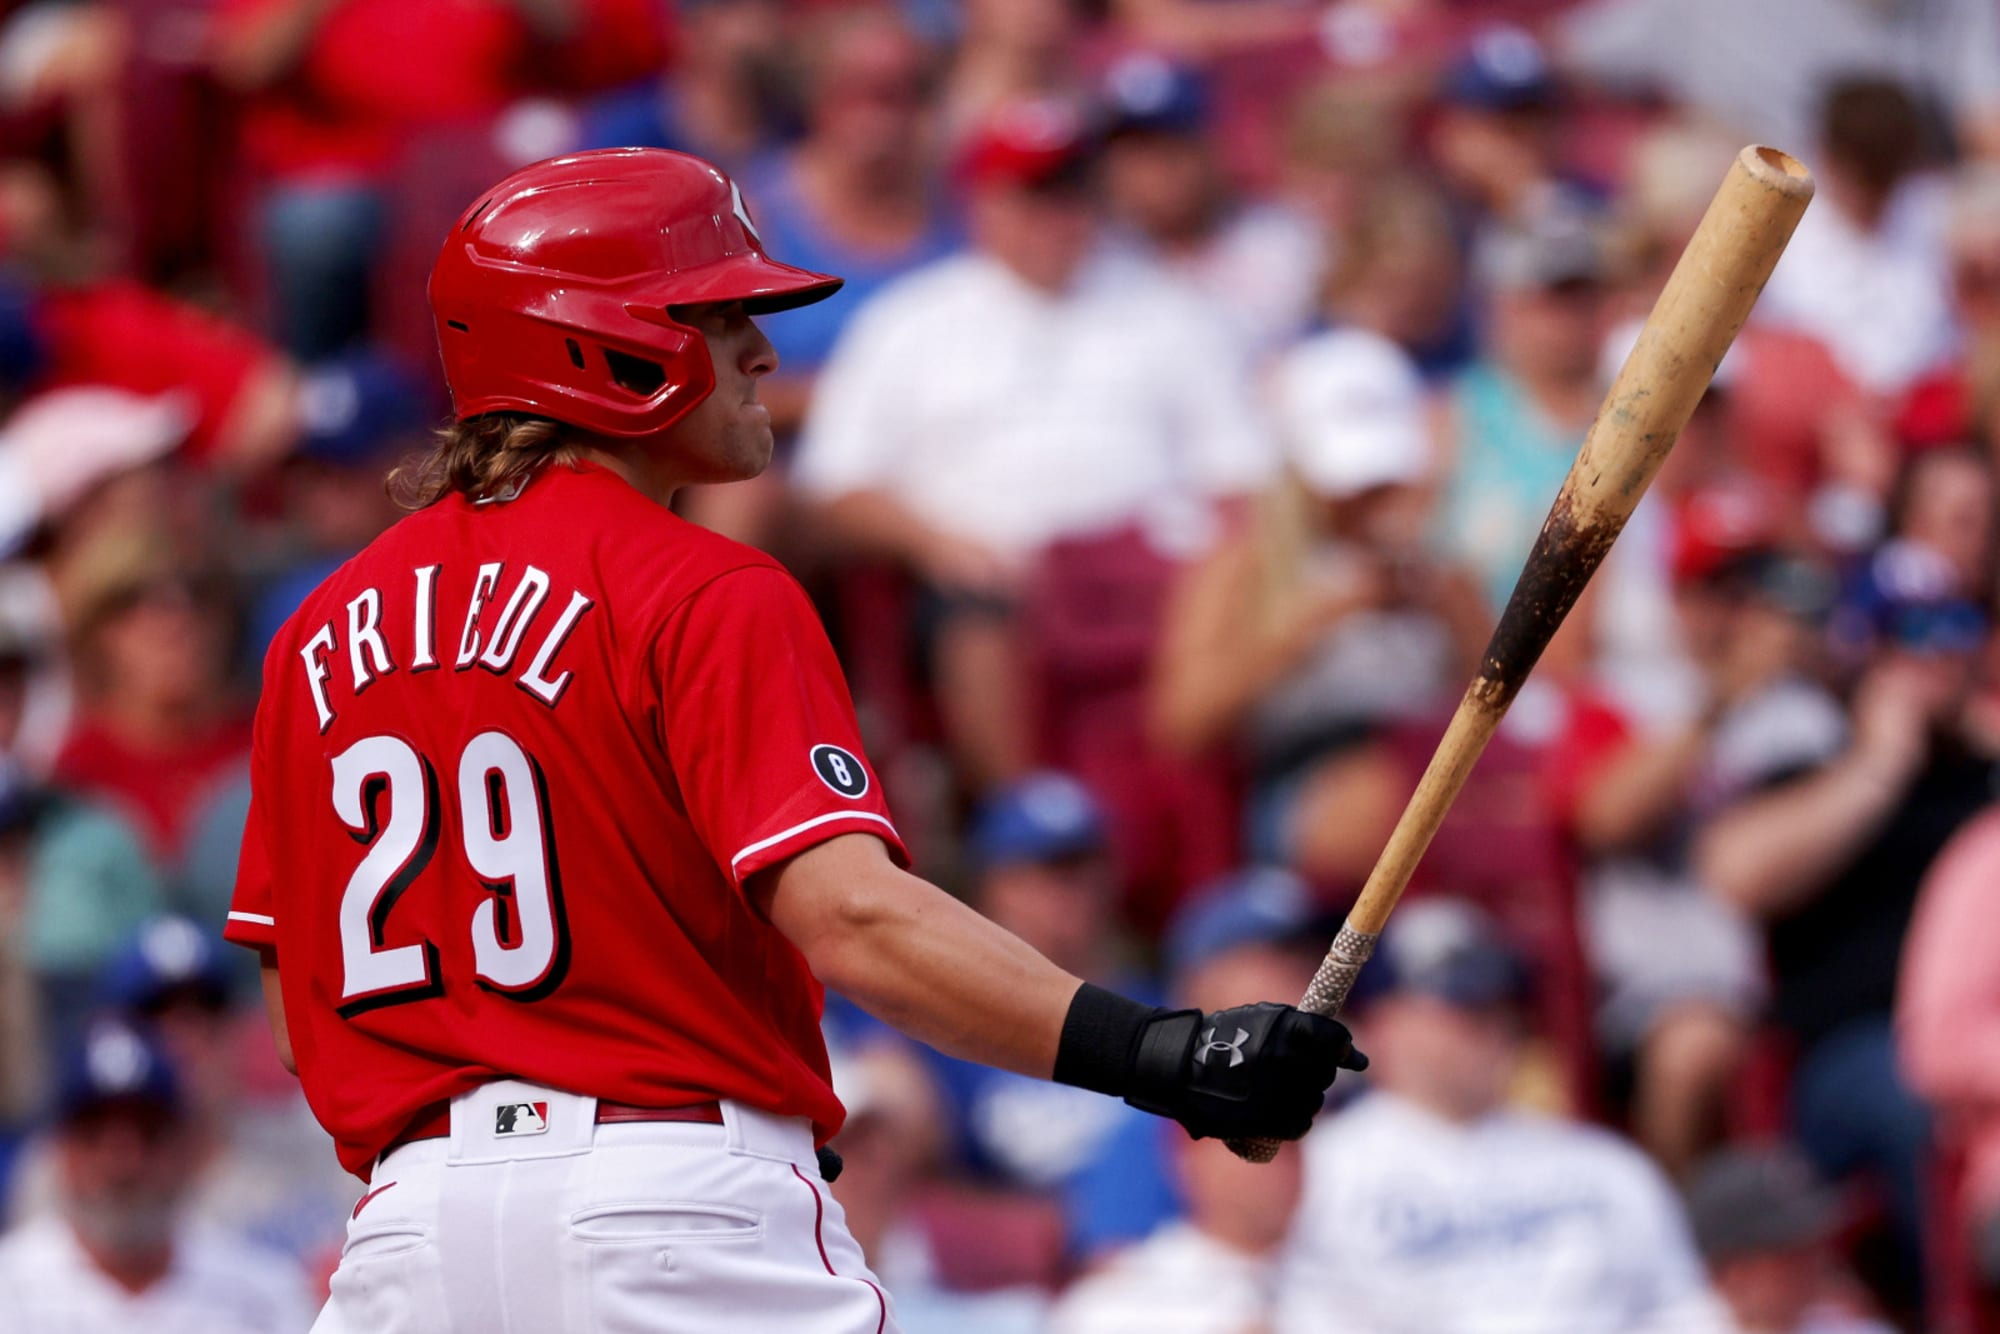 Reds: TJ Friedl should start in center field for the remainder of 2021